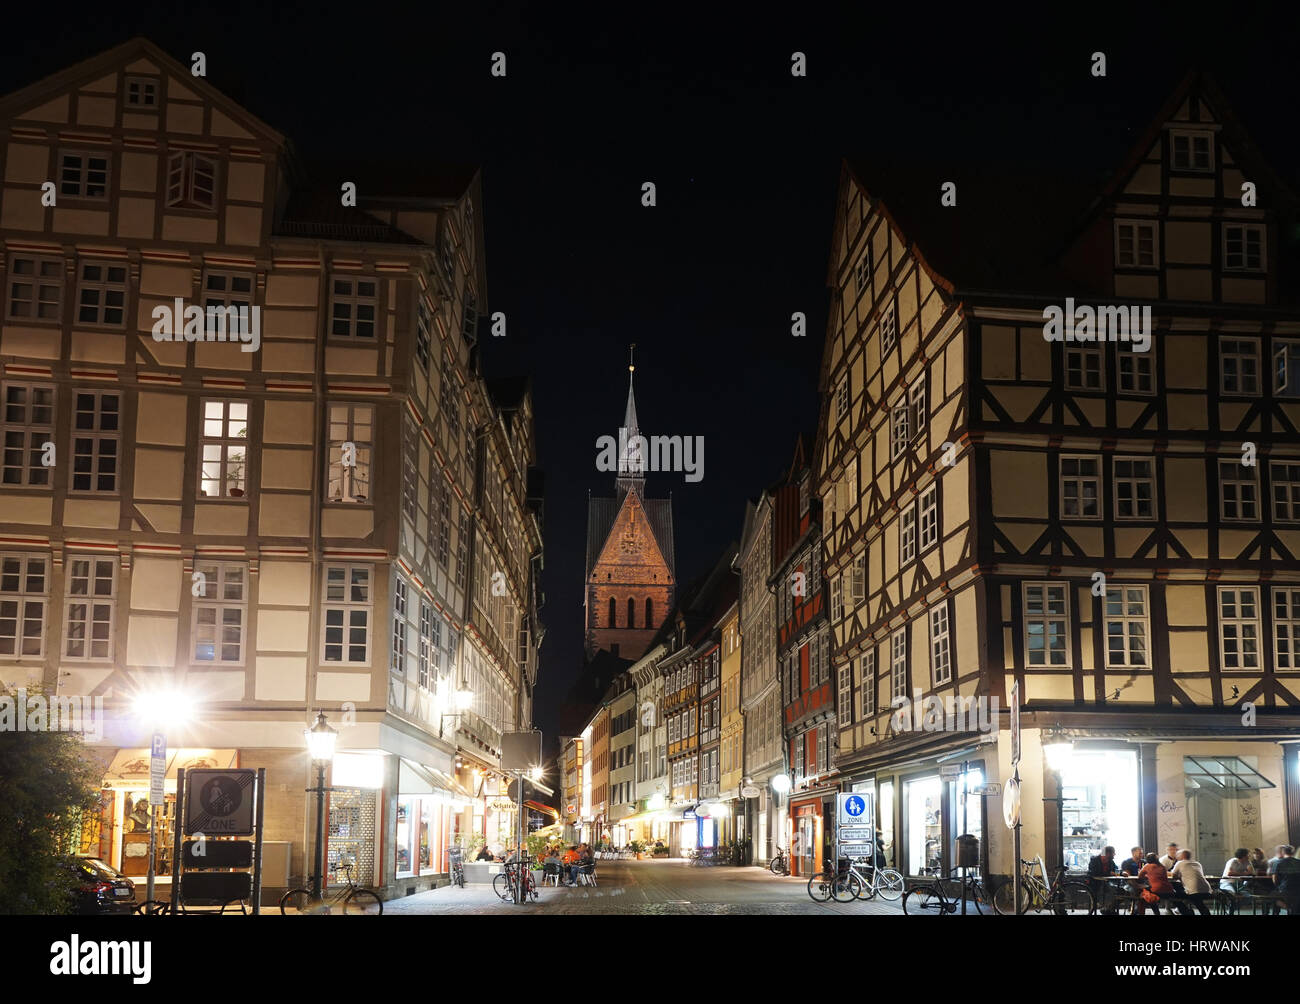 Hannover, Germany - September 9, 2016: Historic old town district with its half-timbered houses and a view of Marktkirche - Stock Image